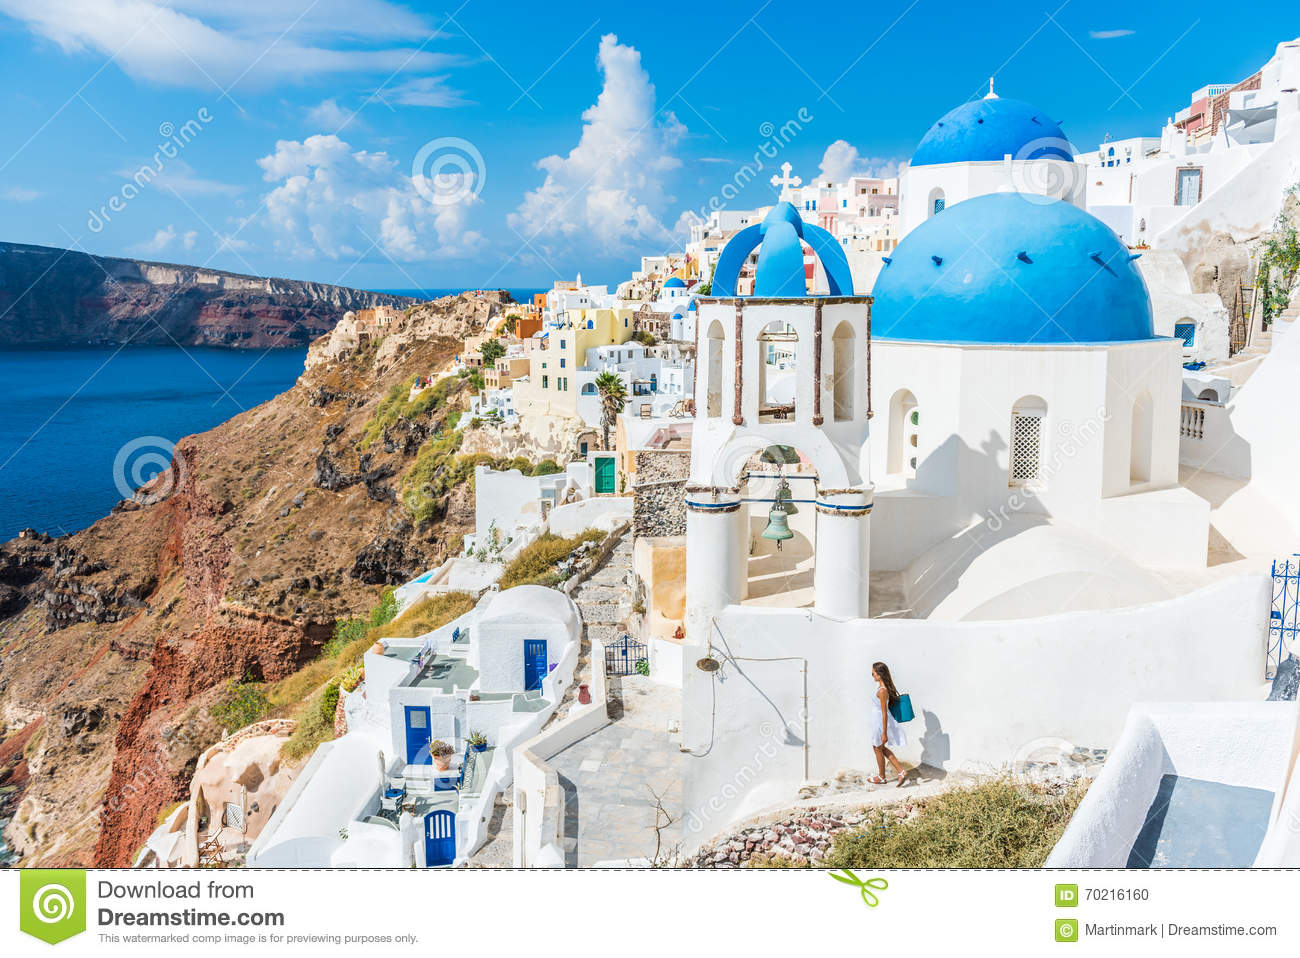 coursework destination european travel A european vacation can take you to grand lands, where history comes alive before your eyes and scenic splendors greet you in every direction.